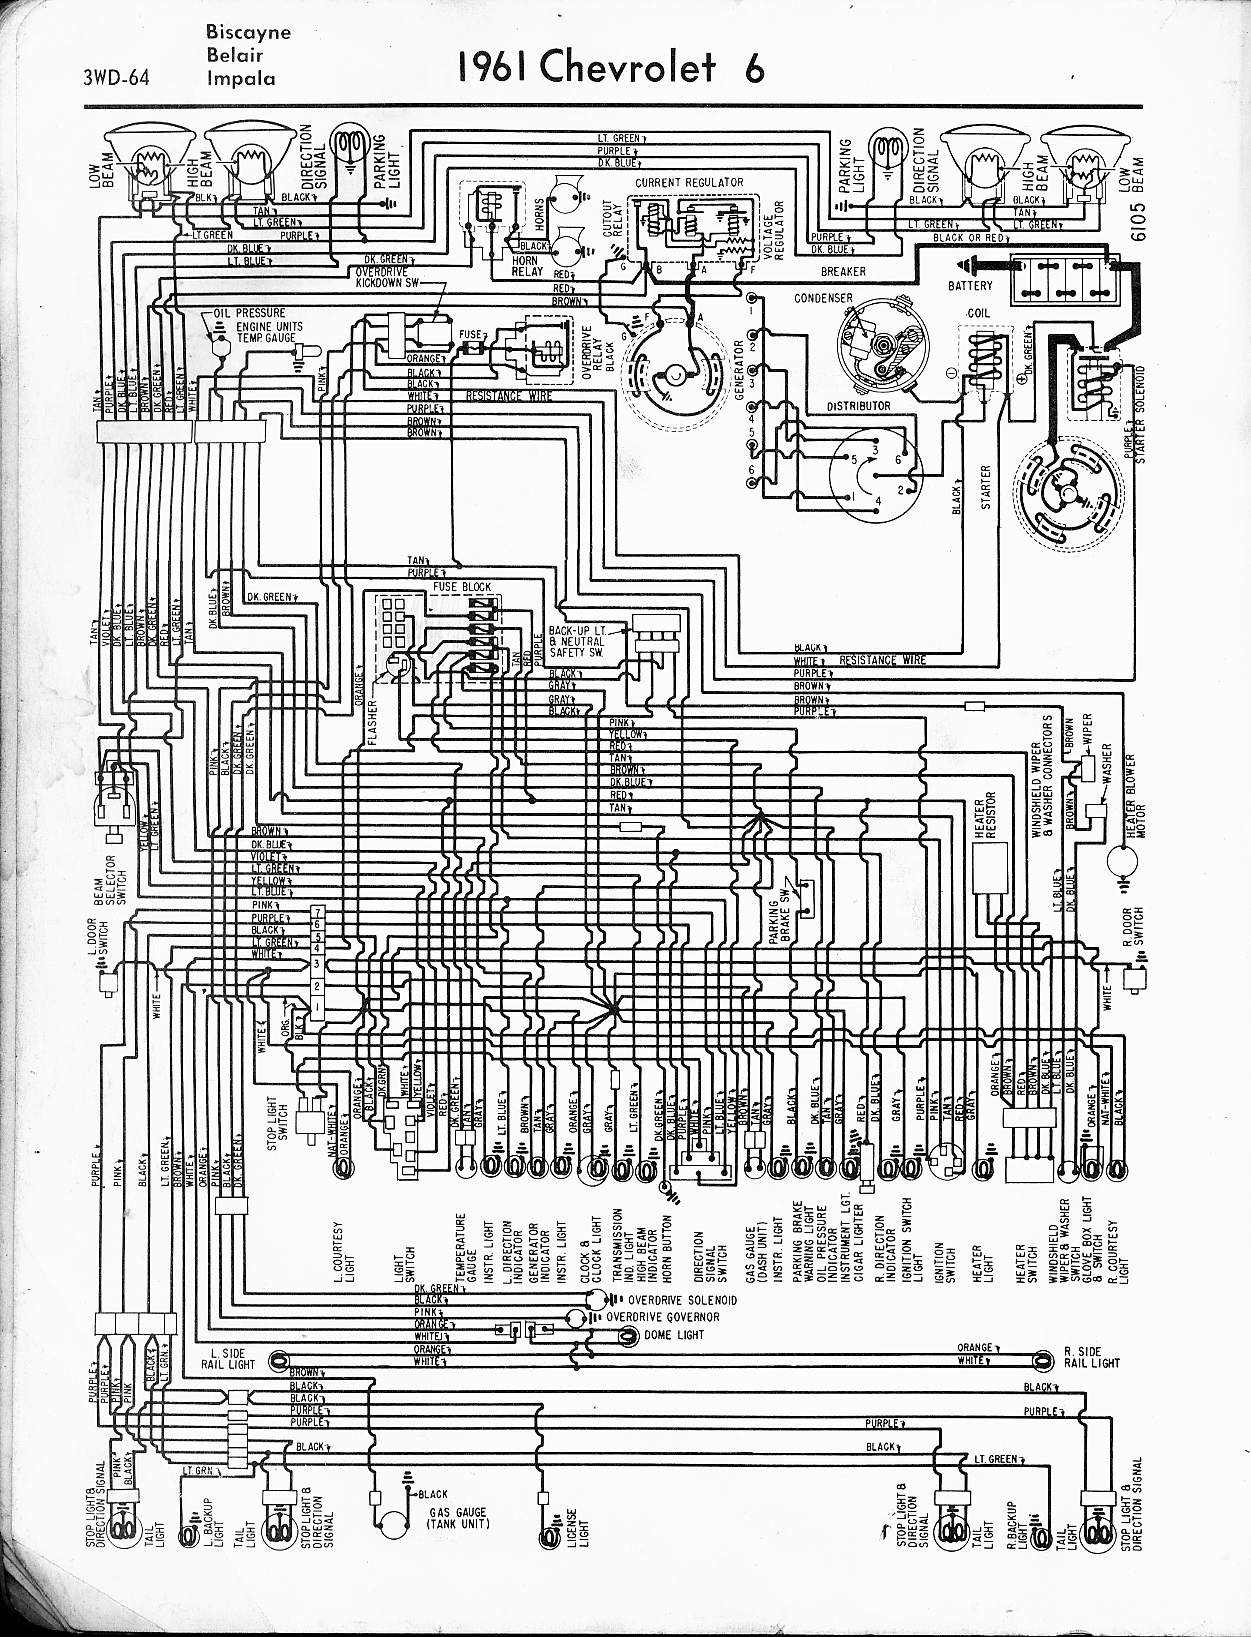 Impala Headlight Wiring Diagram on 1964 impala flywheel, 2007 impala parts diagram, 1964 impala brochure, 1964 impala air cleaner, 1964 impala motor, 1964 impala horn, 1964 impala interior, 1964 impala steering, 1964 impala firewall, 1964 impala wagon, 1964 impala repair, 1964 impala super sport, 1964 impala hydraulics, 1964 impala clock, 1964 impala brakes, 1964 impala ignition switch, 1964 impala transmission, 1964 impala distributor, 1964 impala headlights, 1964 impala suspension,